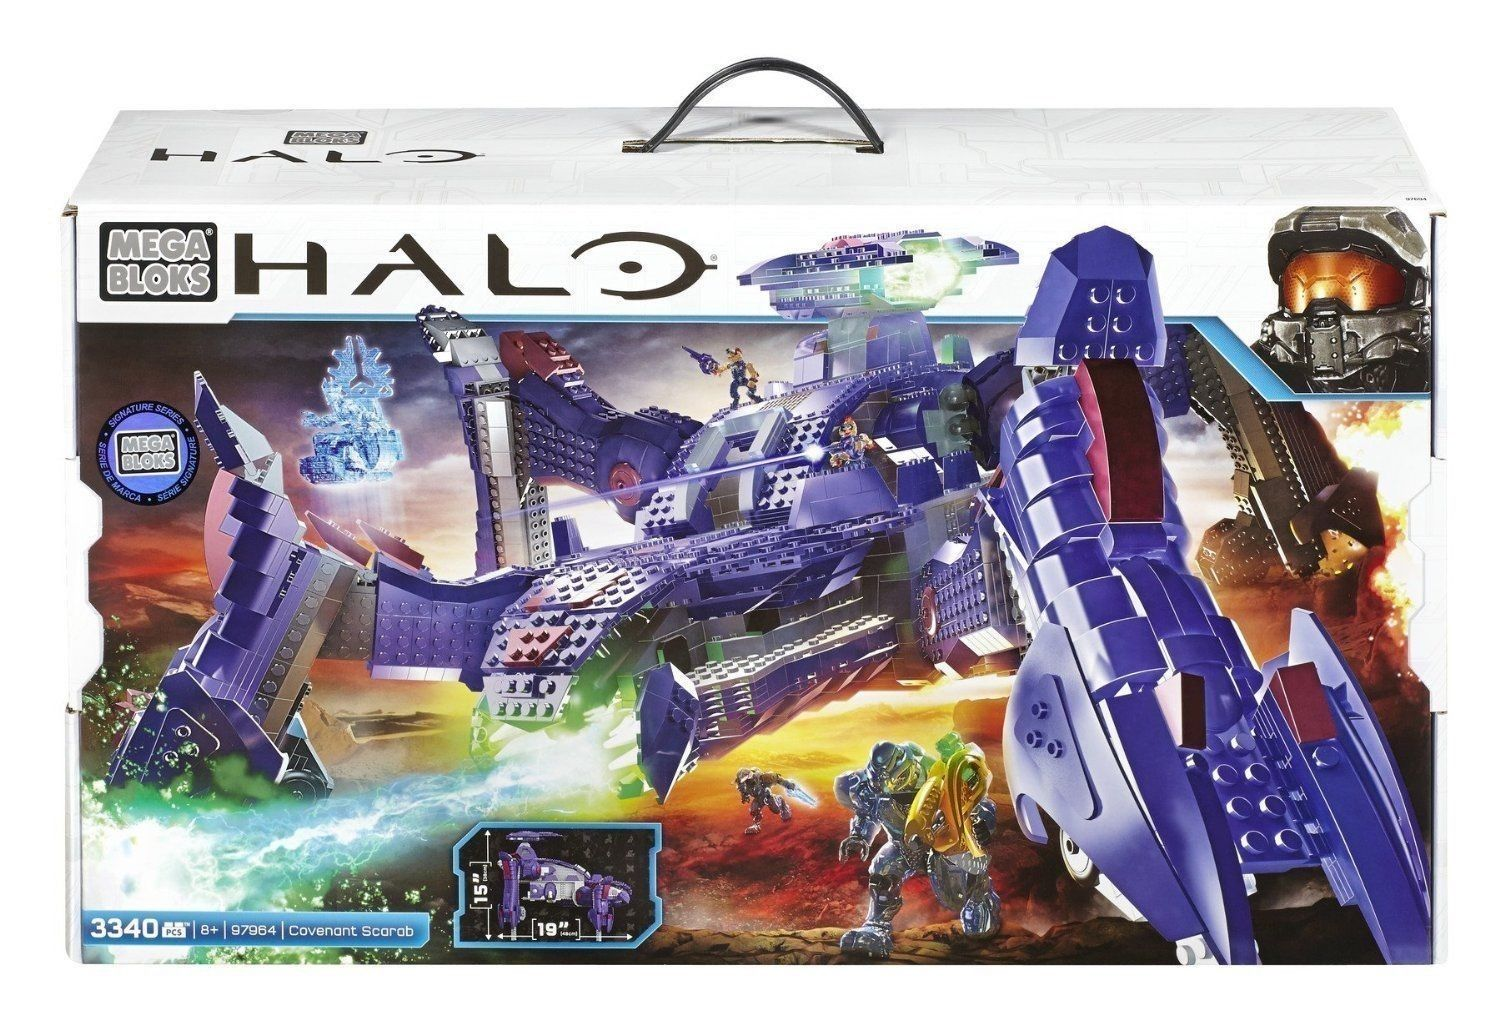 Covenant Scarab is an officially licensed, authentic Mega Bloks Halo product at B.A. Toys featuring Covenant Scarab by Mega Bloks Halo